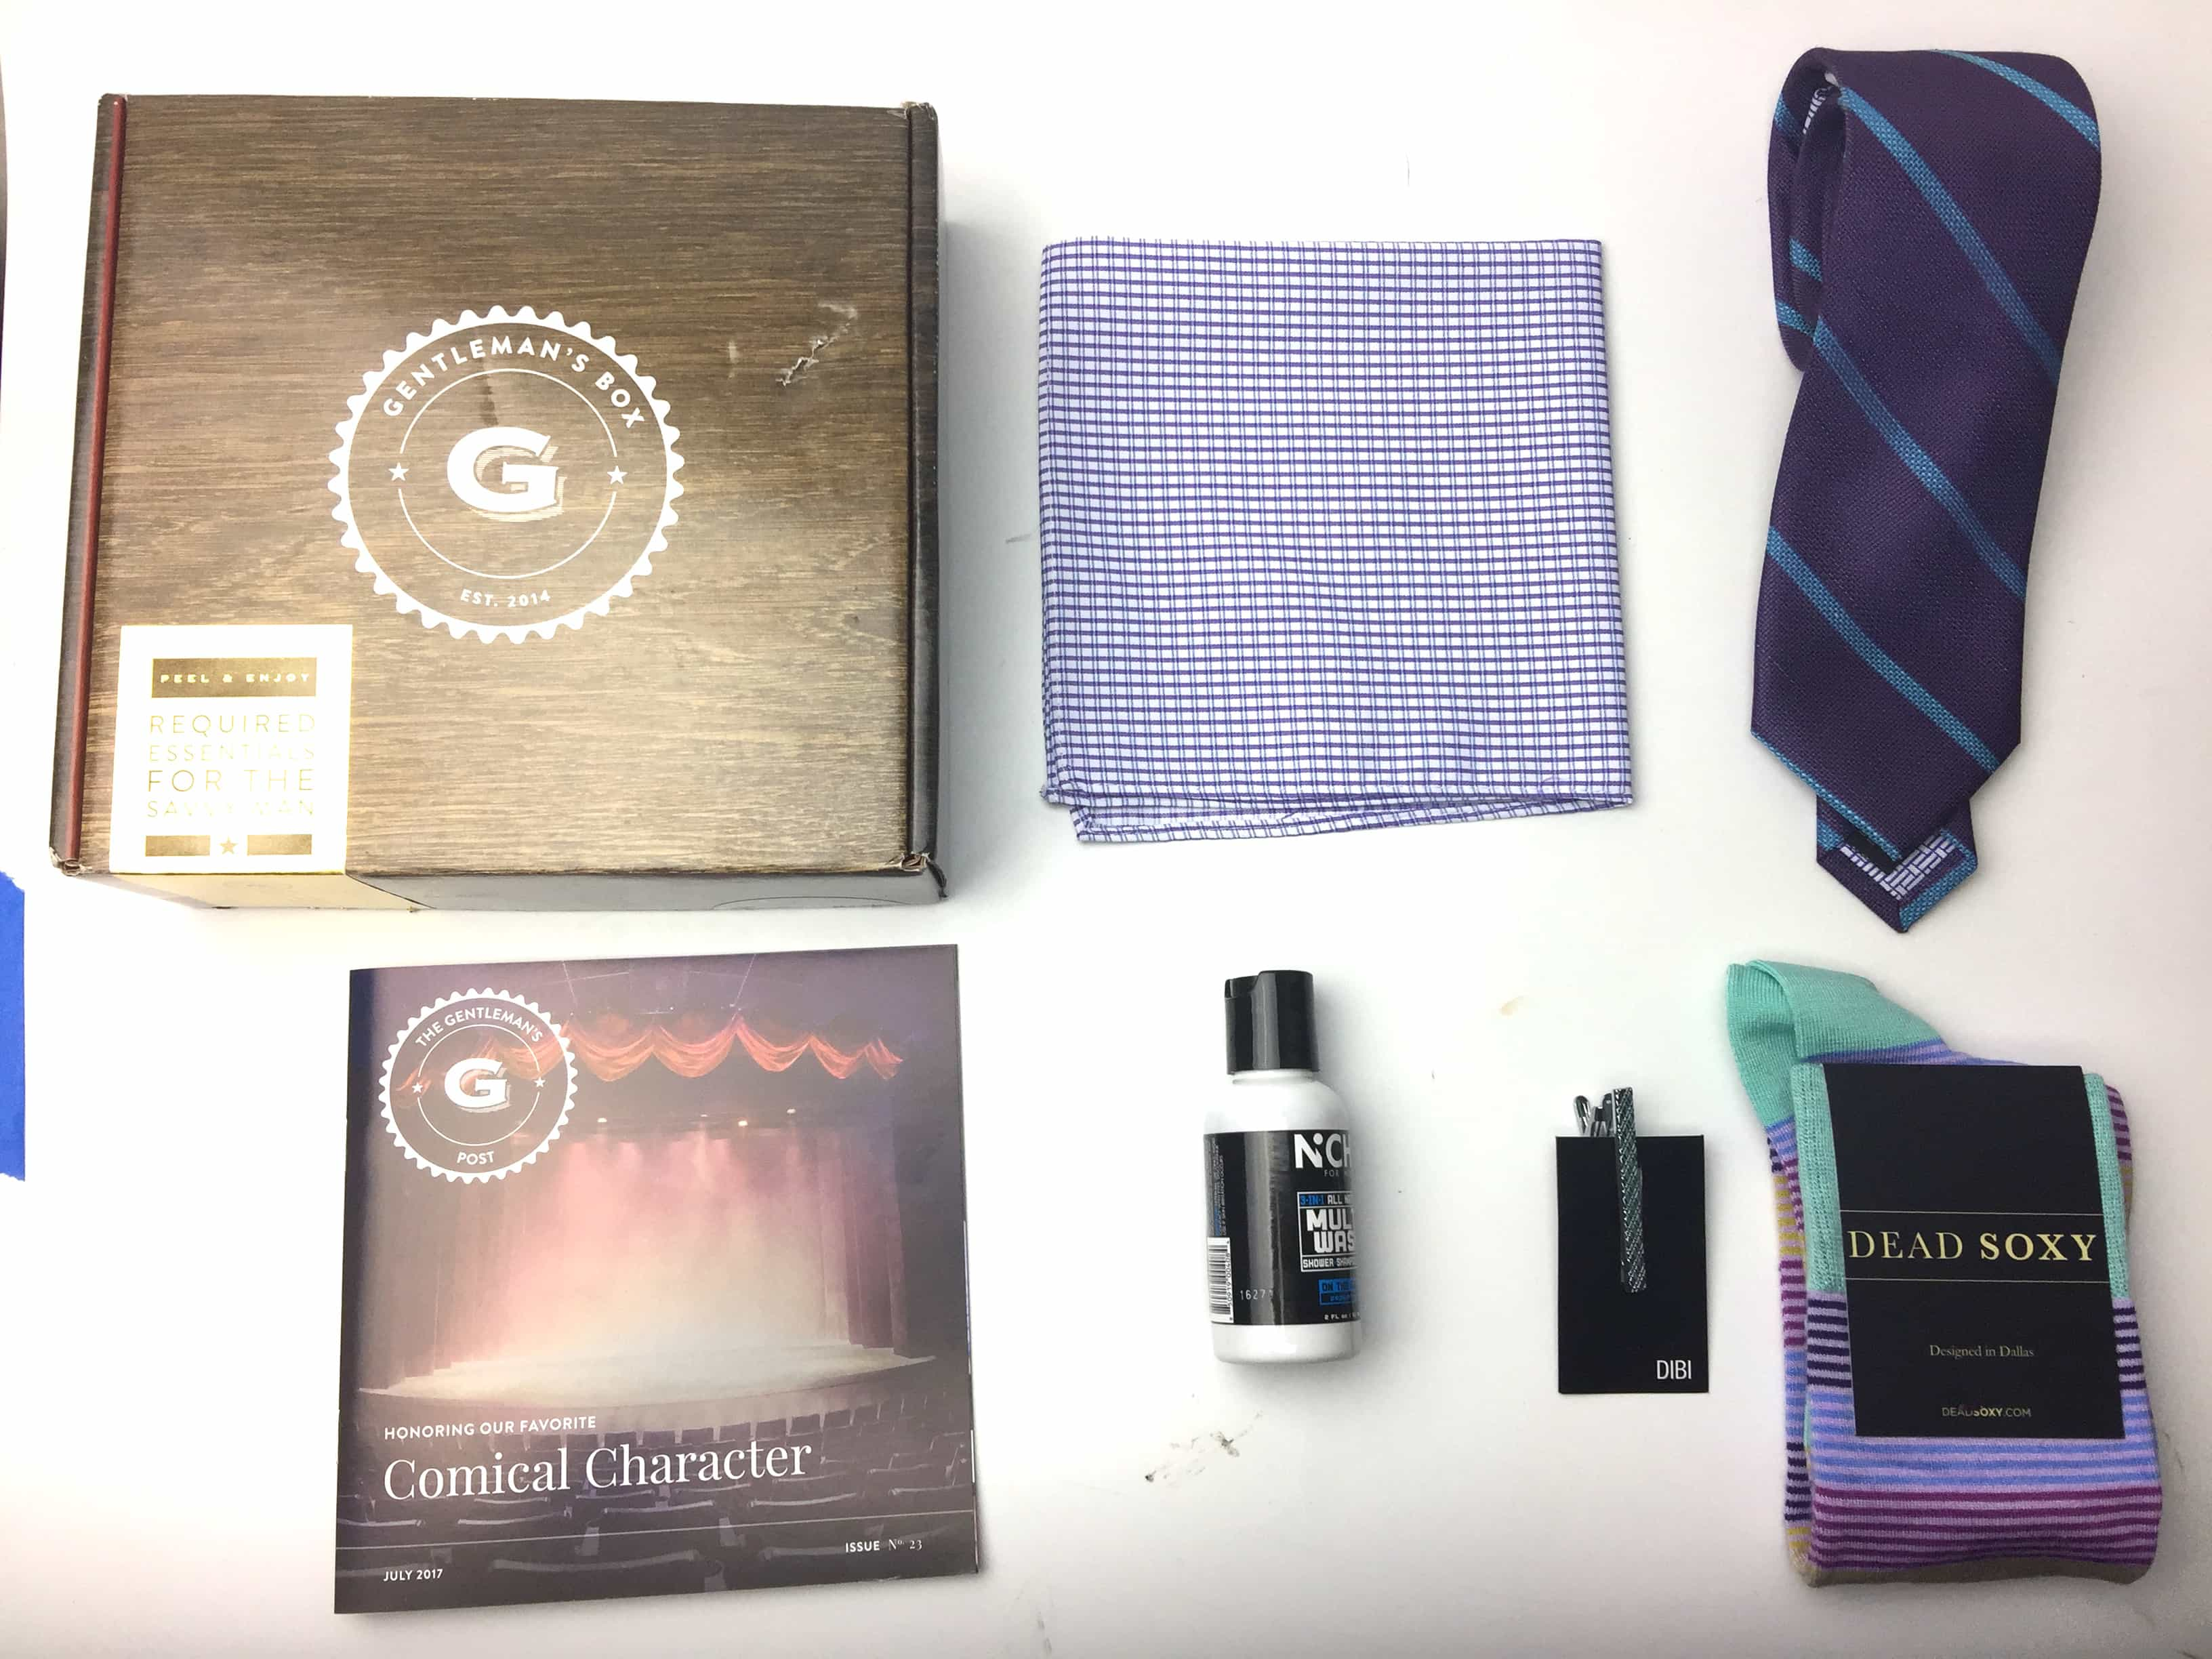 The Gentleman's Box Review & Coupon – July 2017